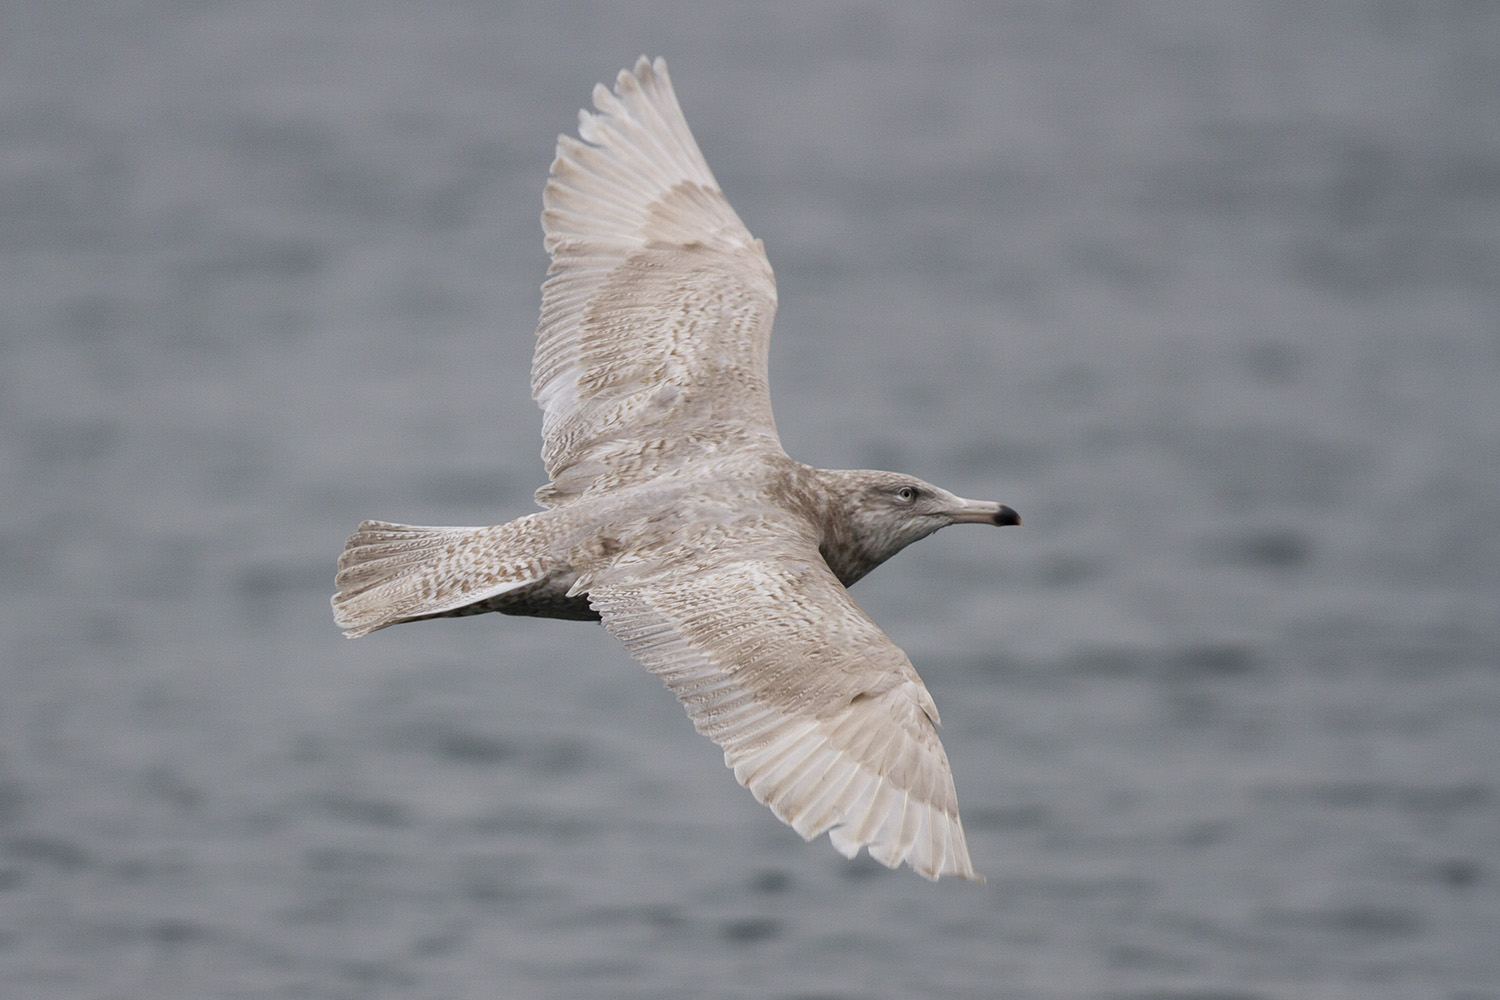 Glaucous Gull, Peel, Isle of Man, 31 Dec 2018 (Neil G. Morris)